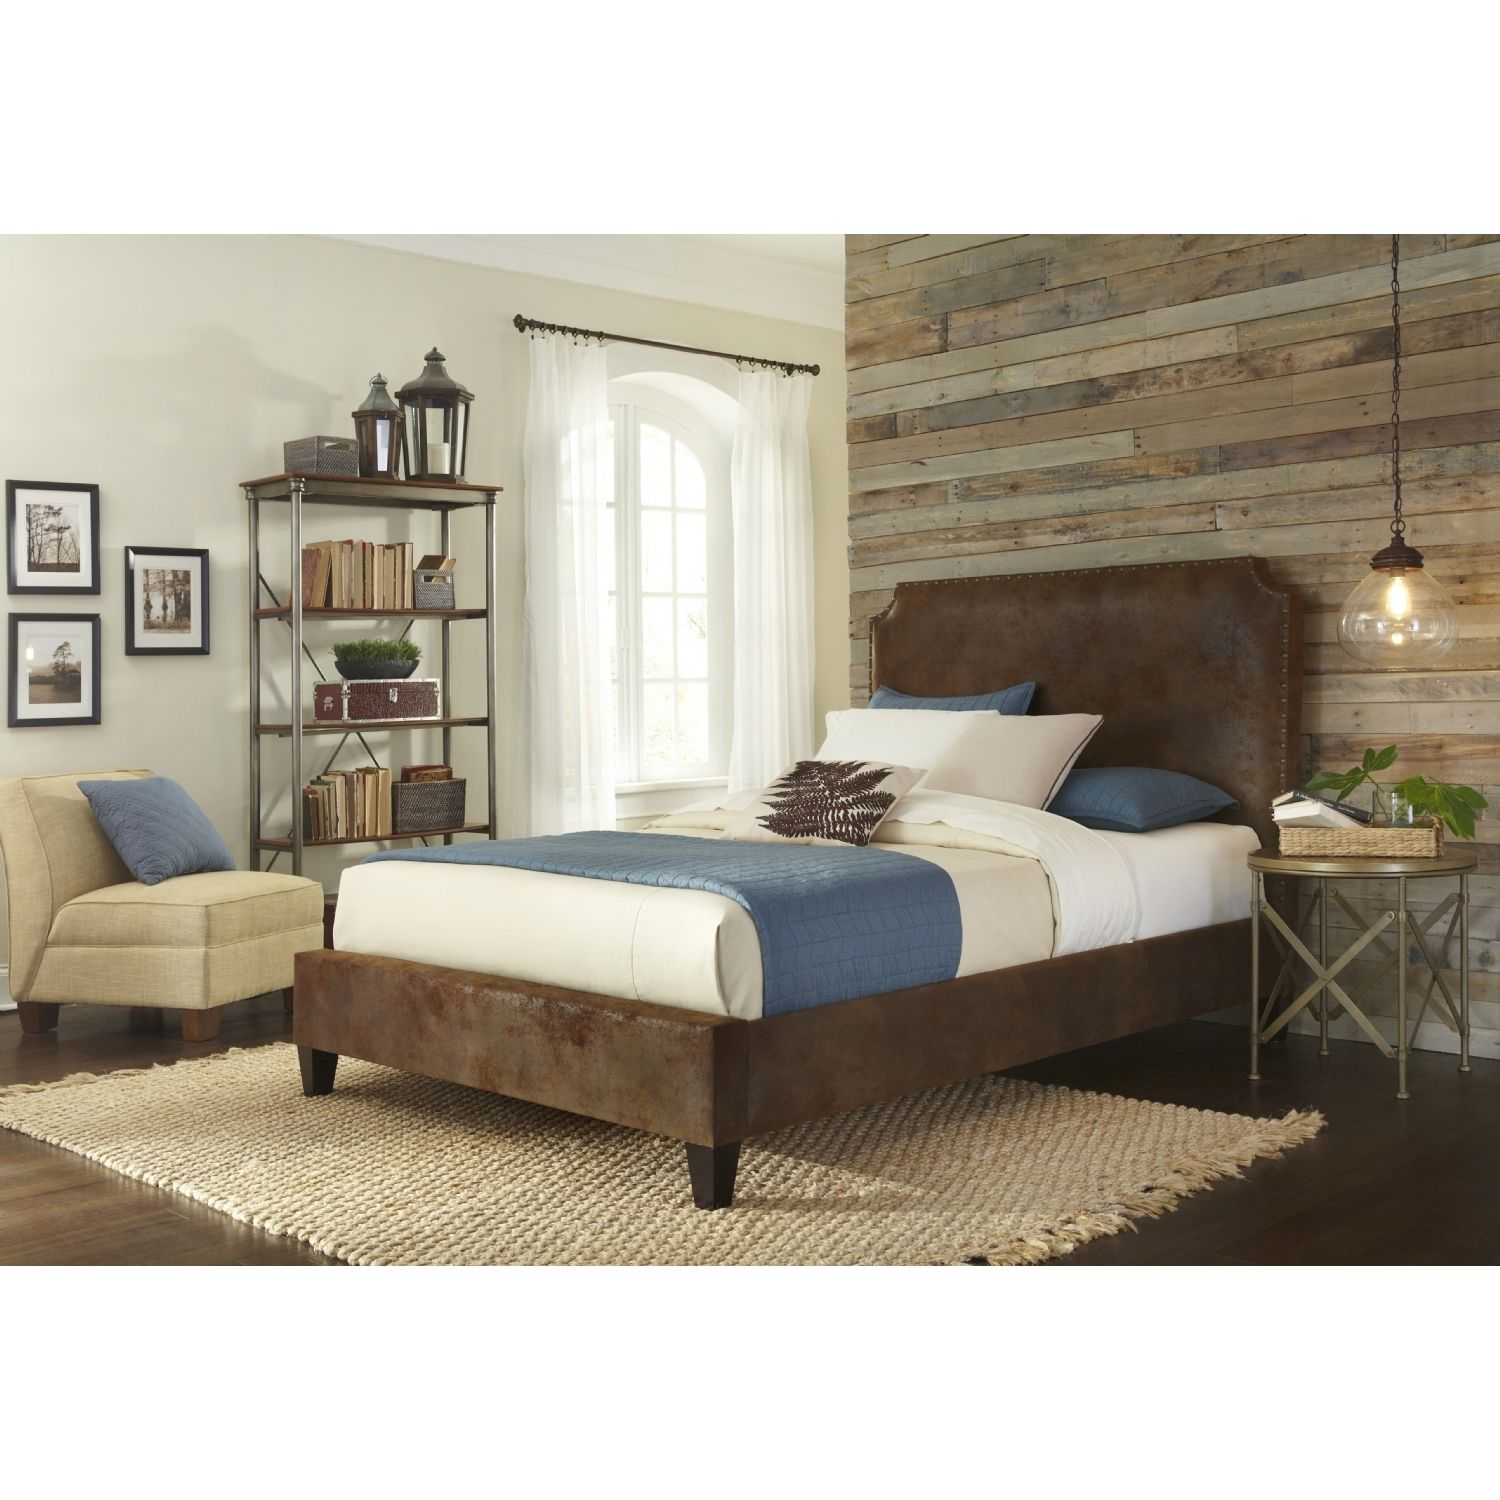 Master bedroom king size bed designs  The Canterbury king size bed features an attractive tobacco colored